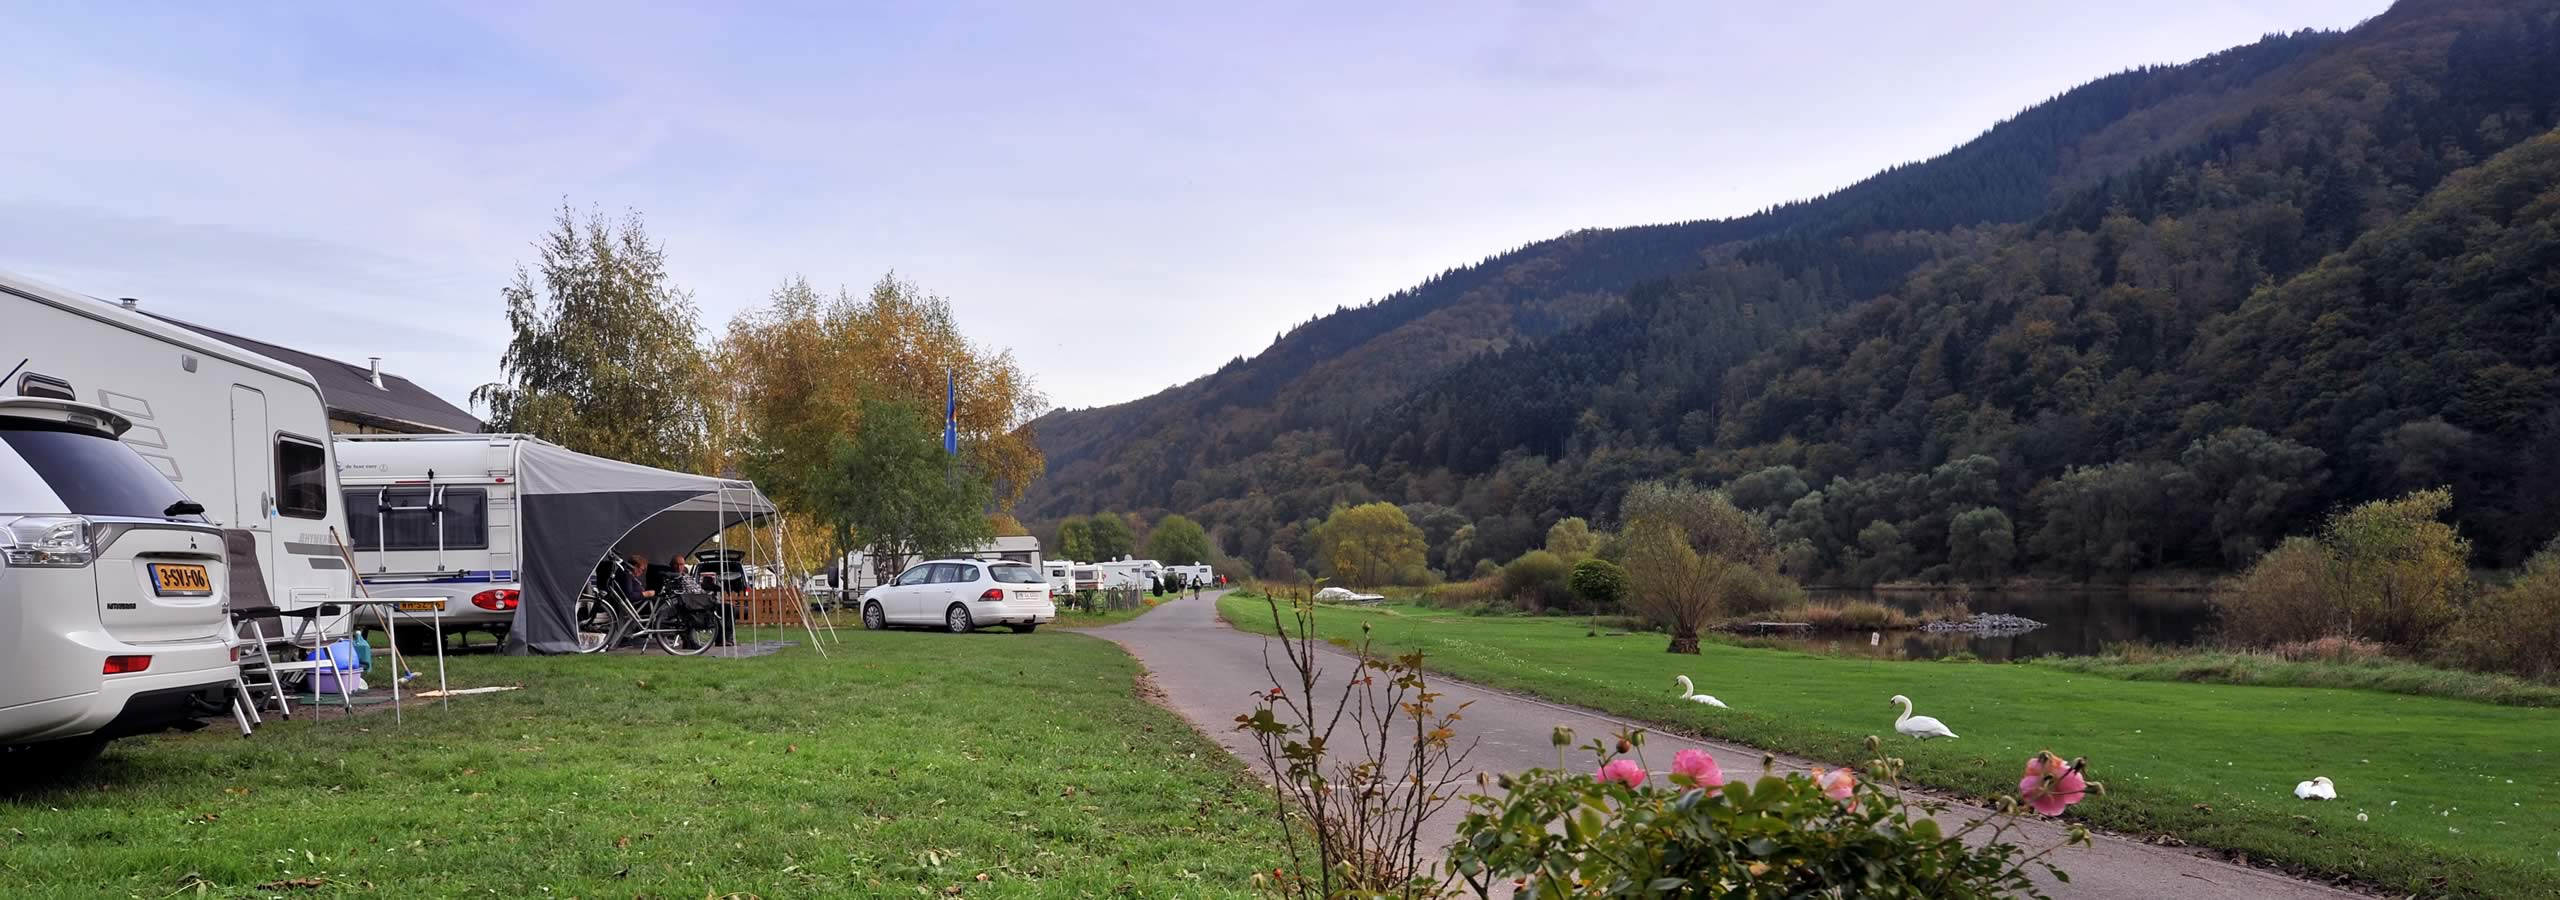 "Camping ground ""Zum Feuerberg"": Relax and feel at ease"